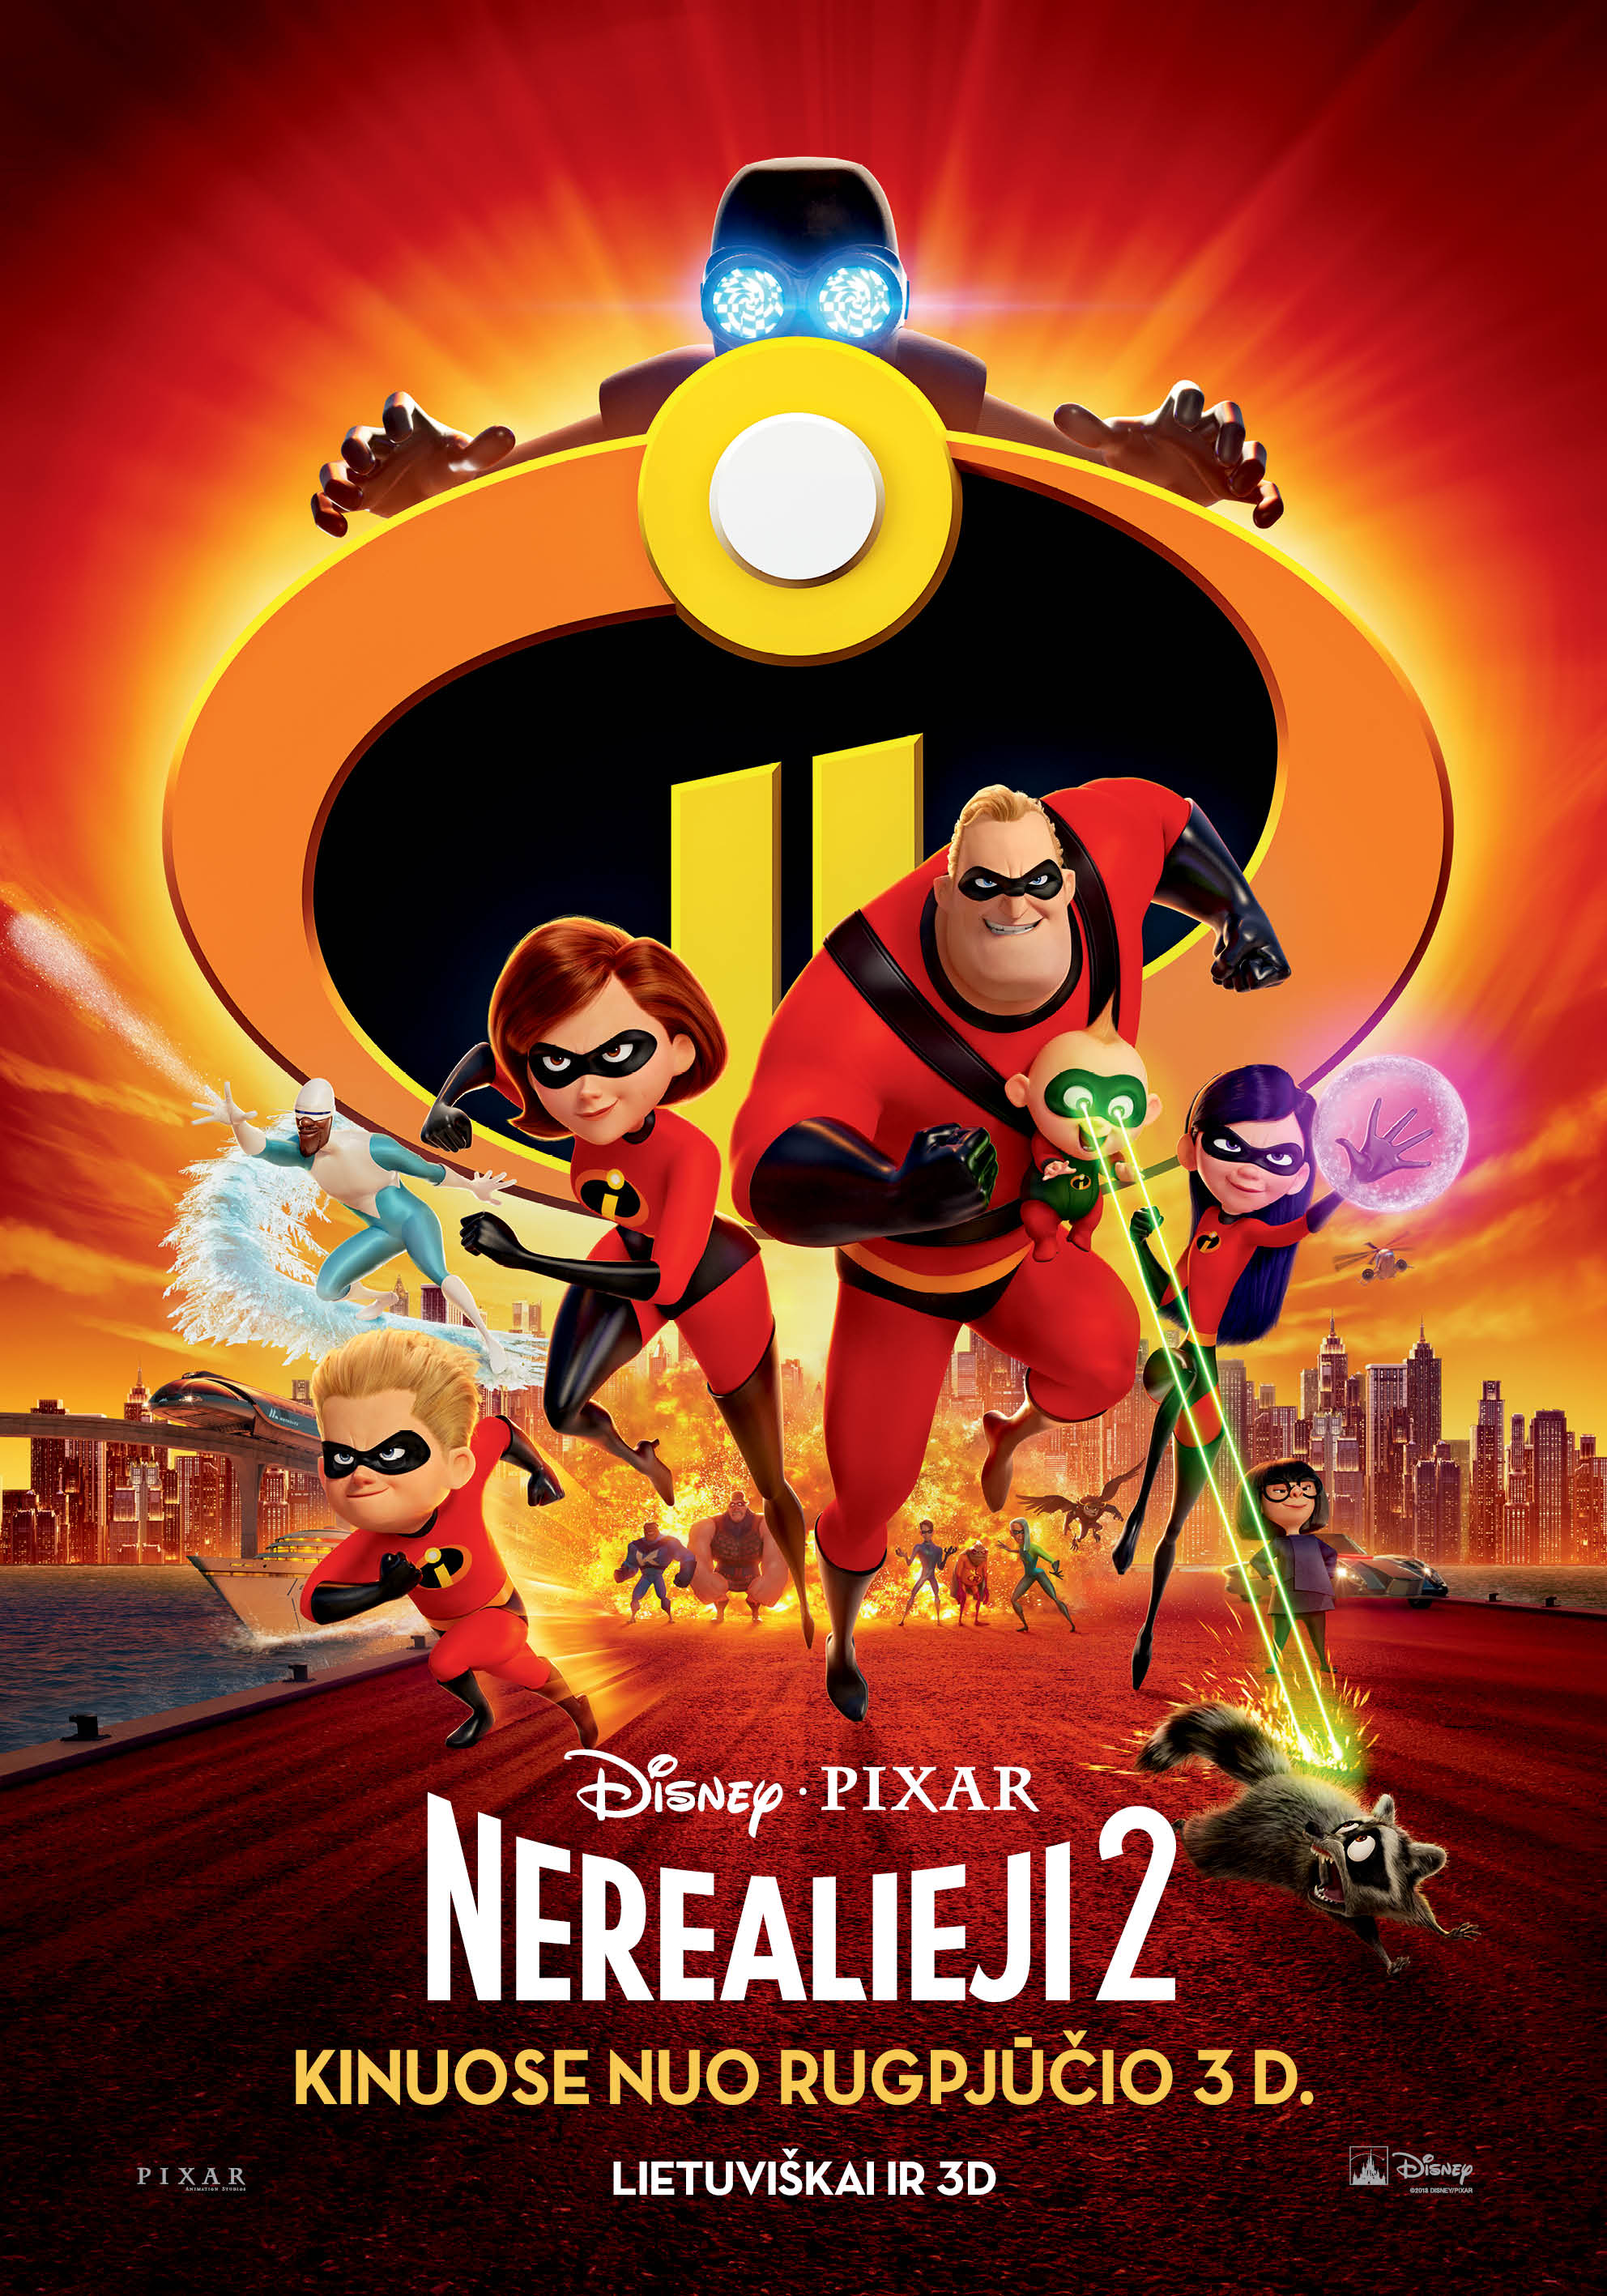 Nerealieji 2 (Incredibles 2)